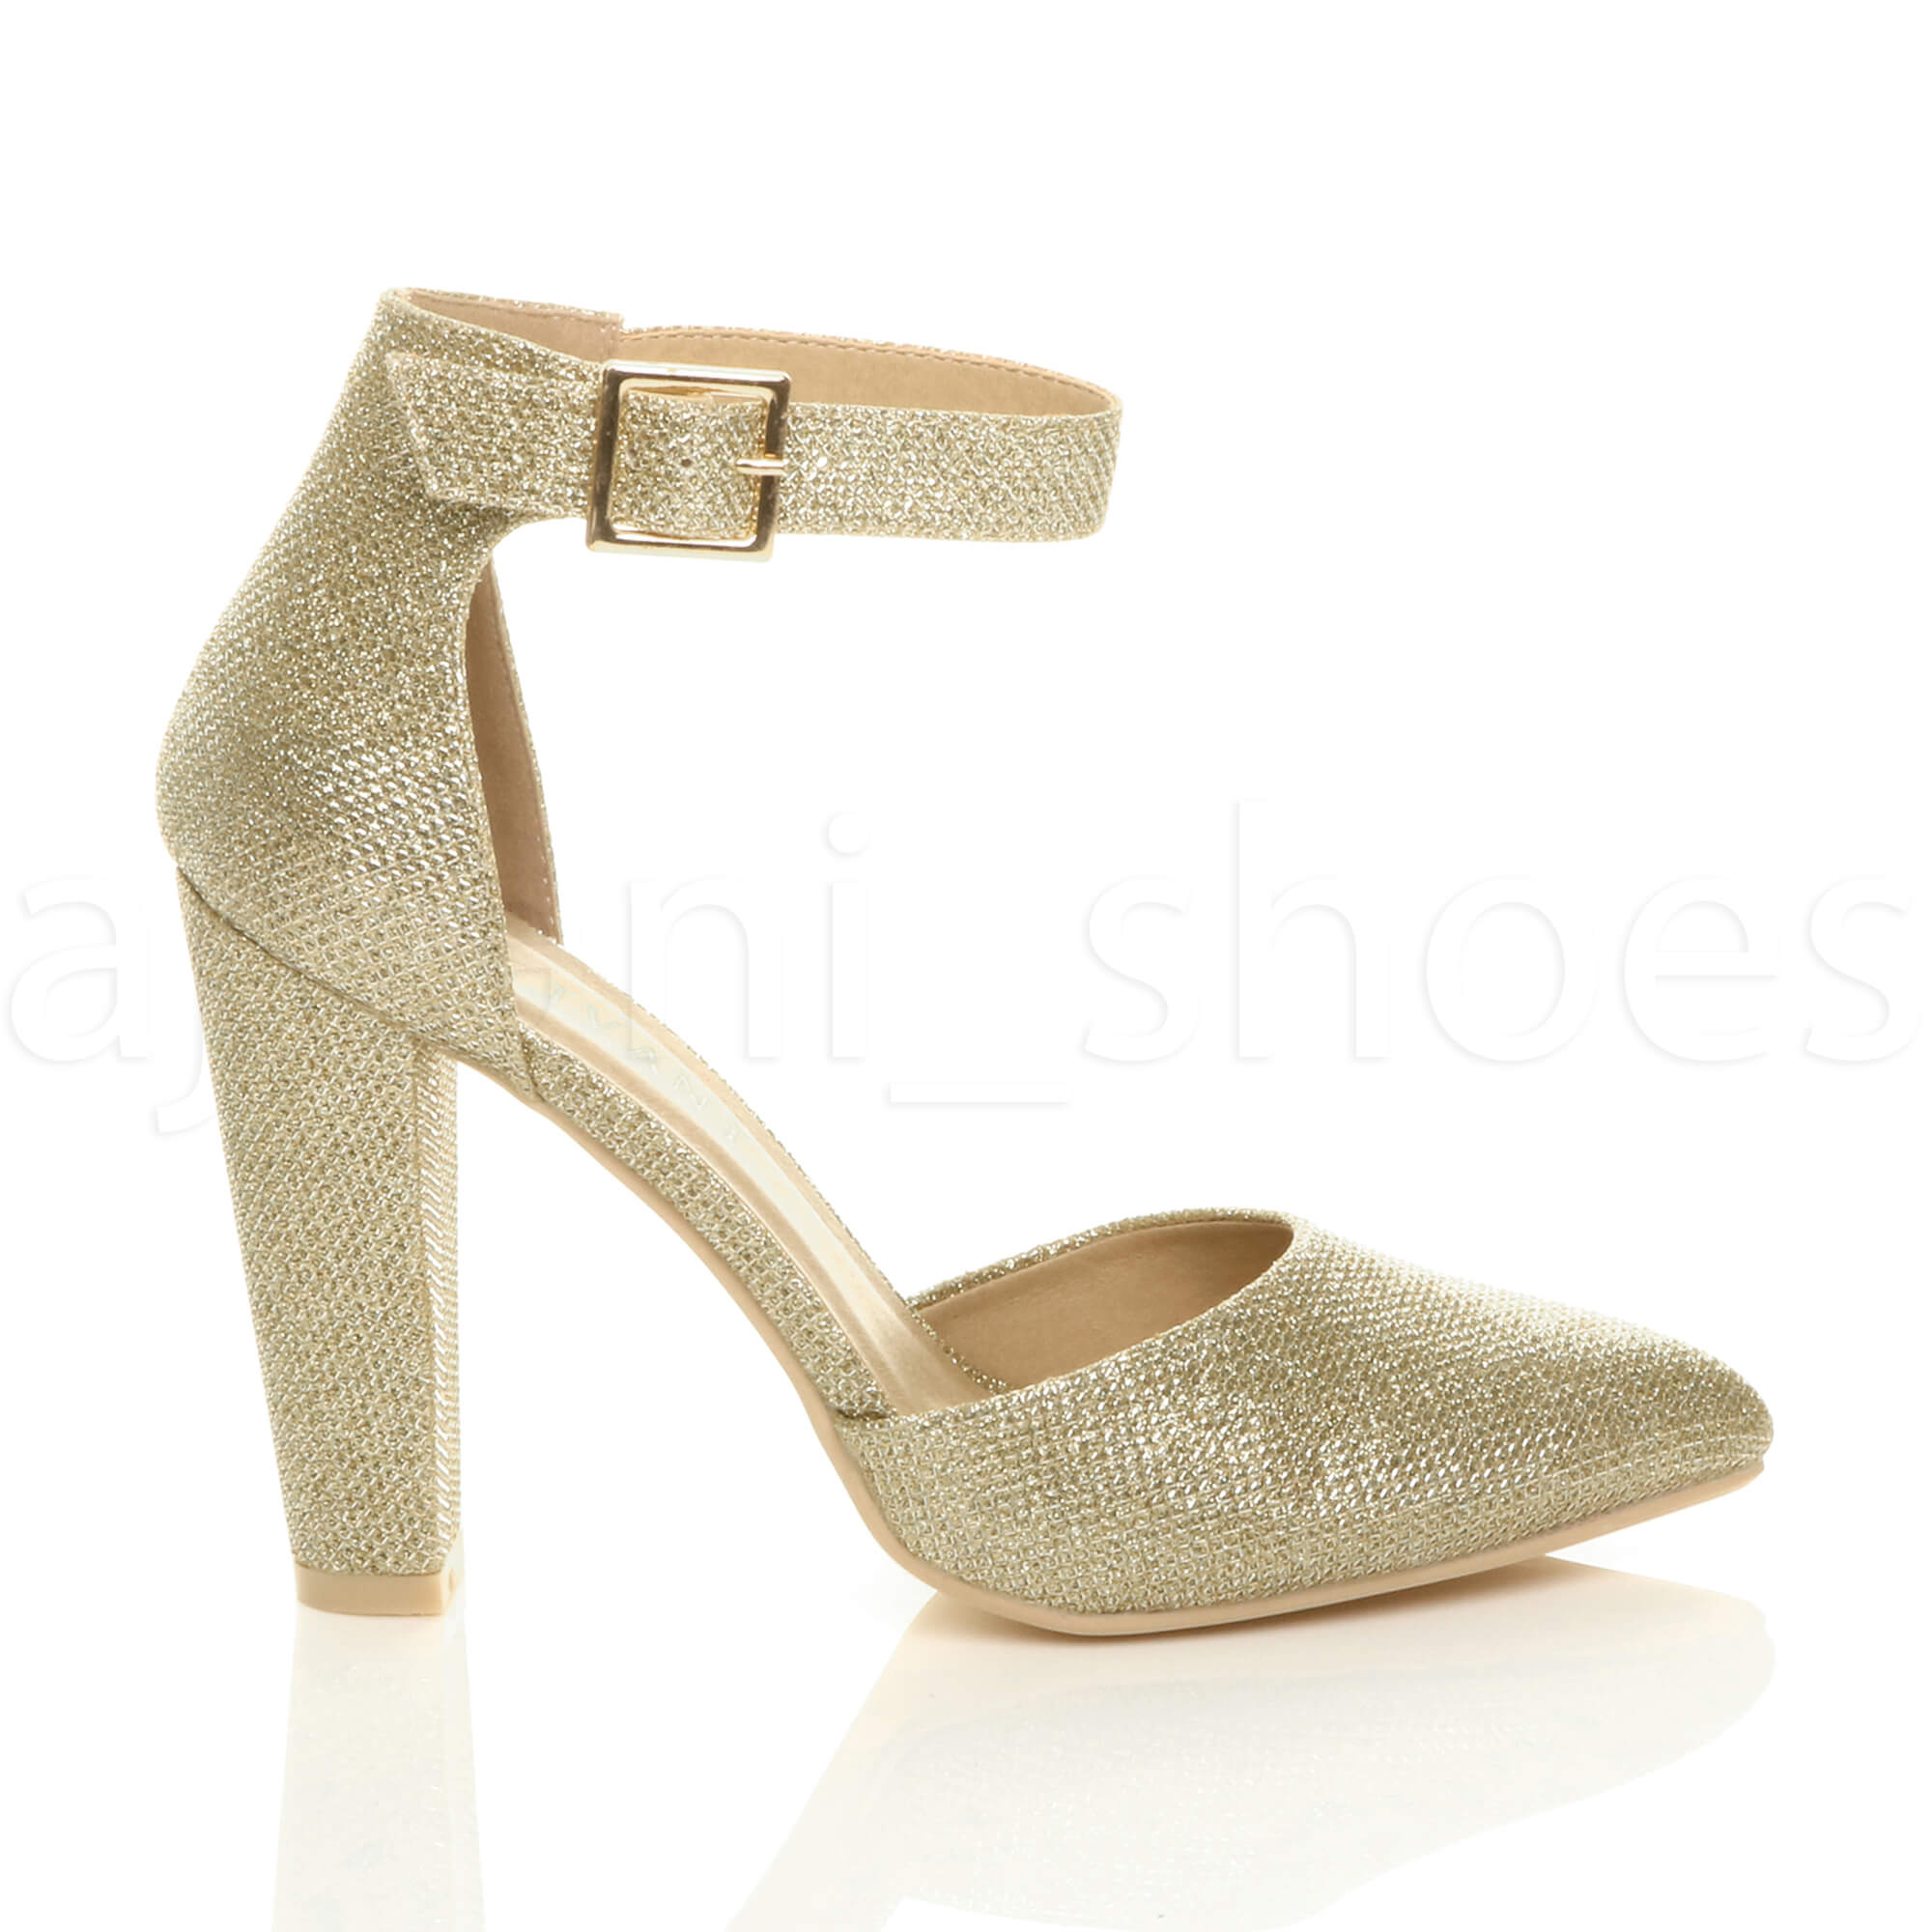 WOMENS-LADIES-HIGH-BLOCK-HEEL-ANKLE-STRAP-BUCKLE-POINTED-COURT-SHOES-SIZE thumbnail 73